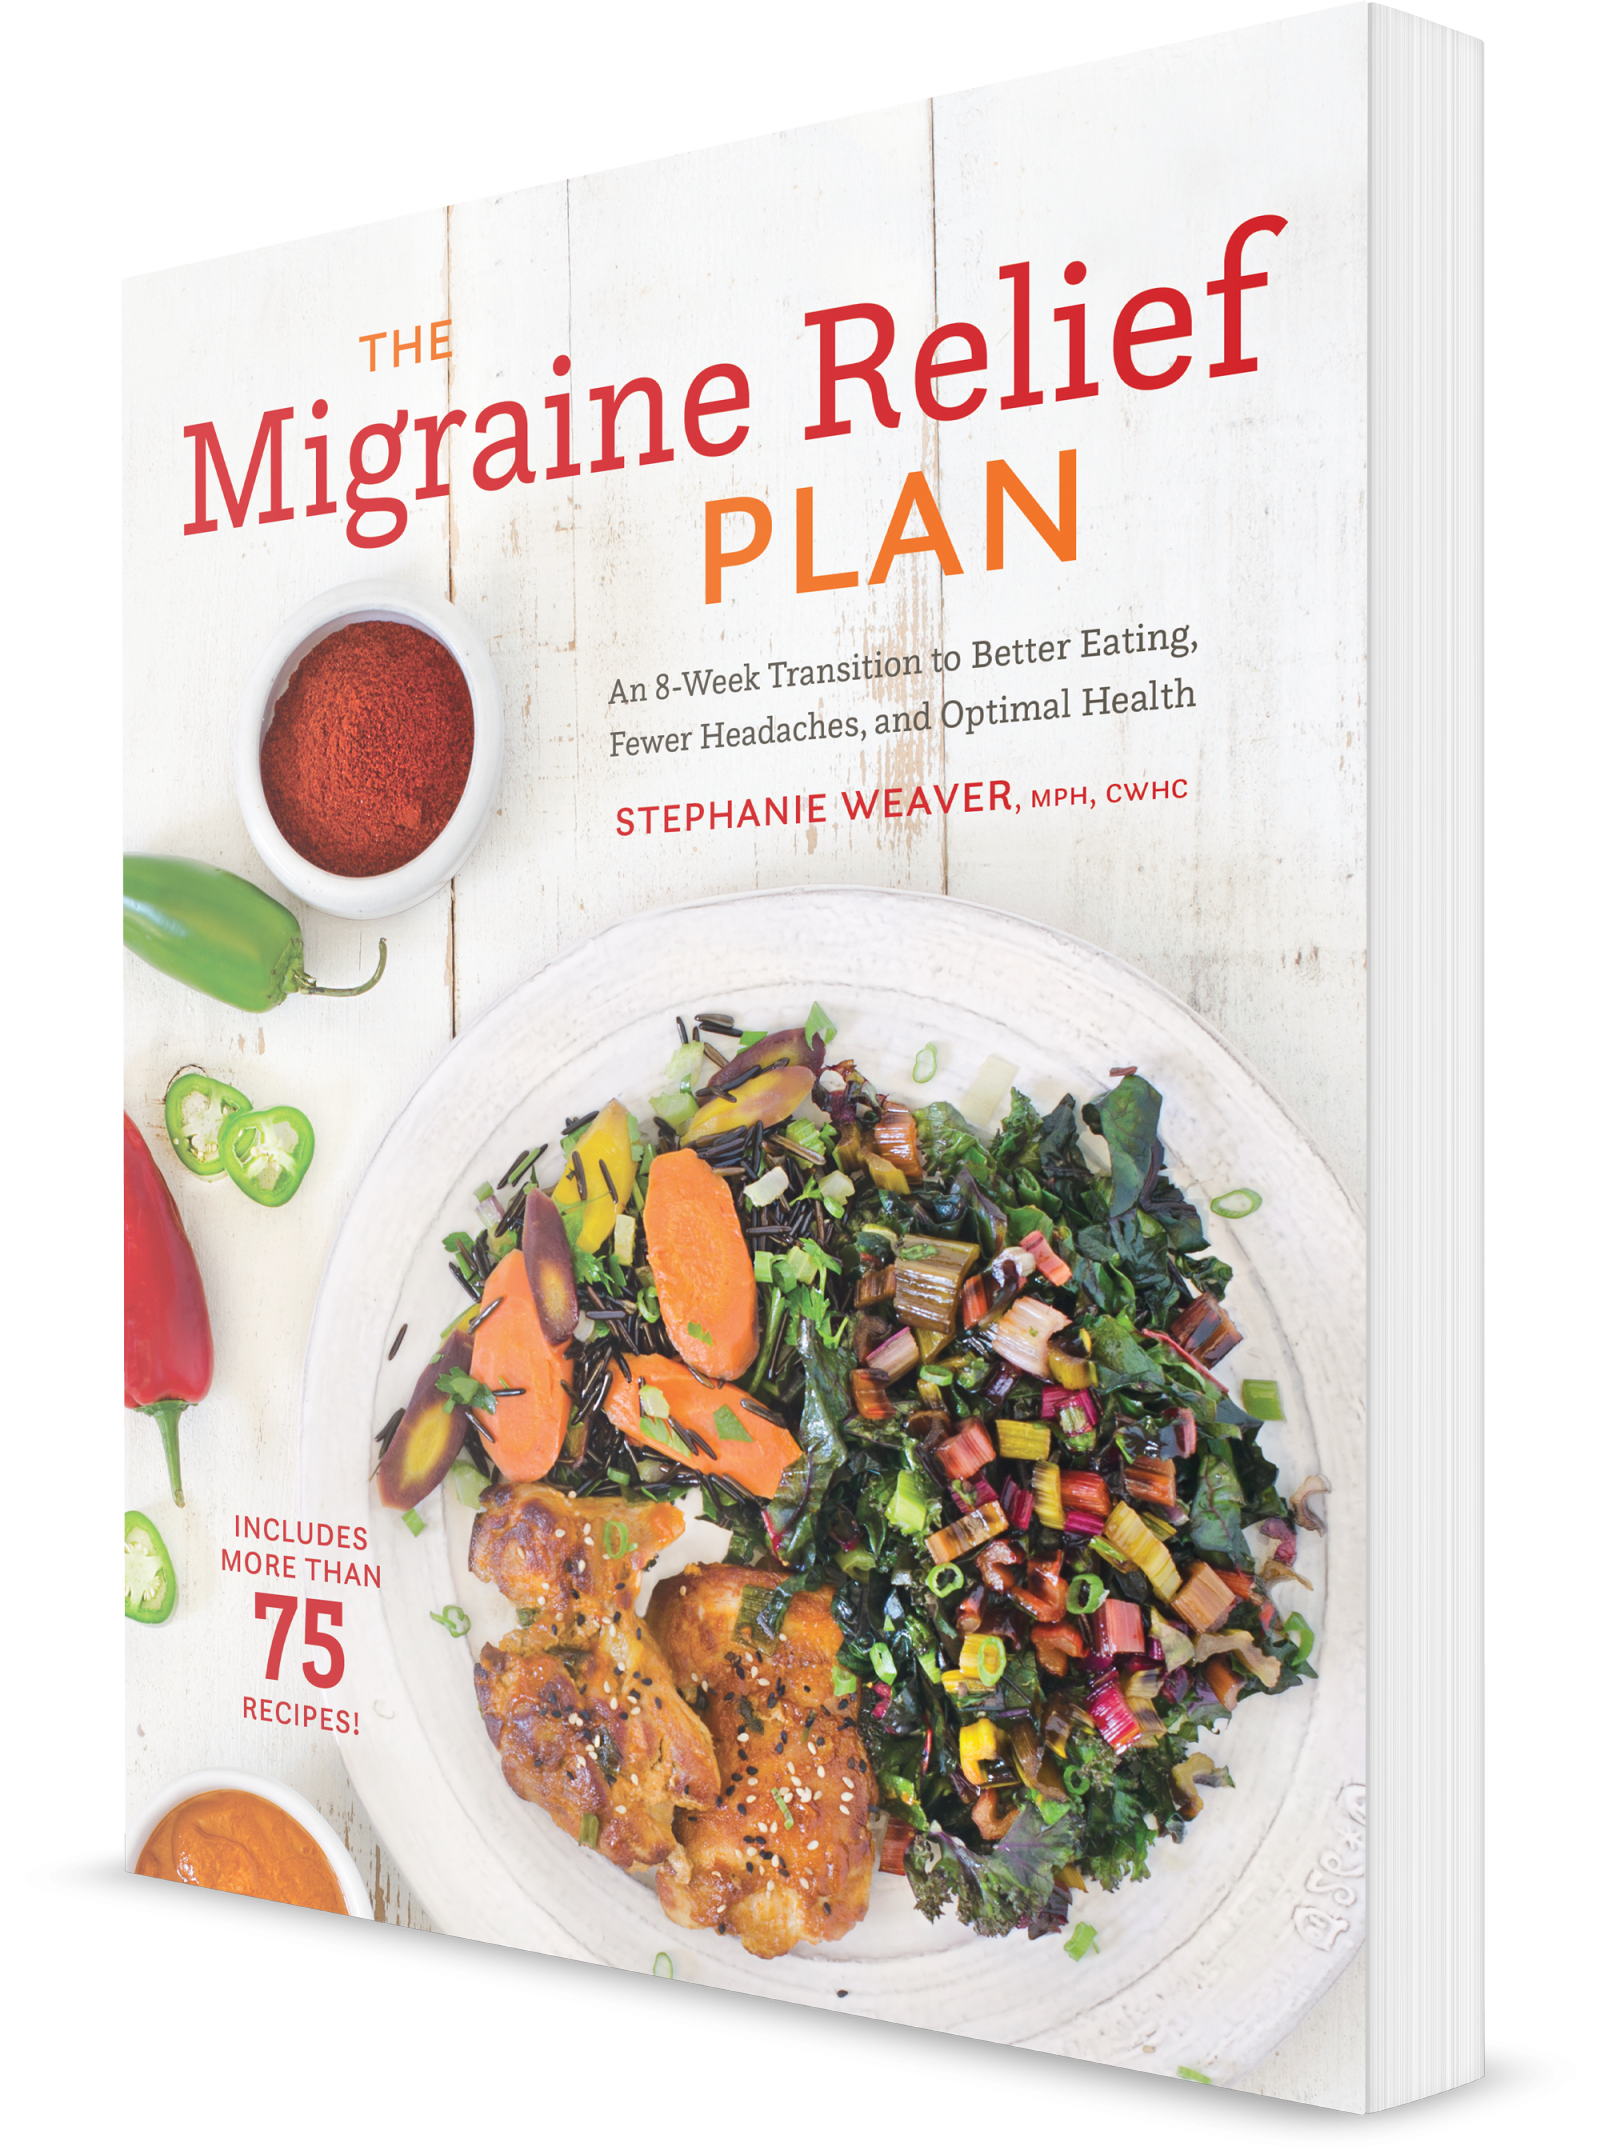 Recipe: Maple Sesame Glazed Chicken from The Migraine Relief Plan